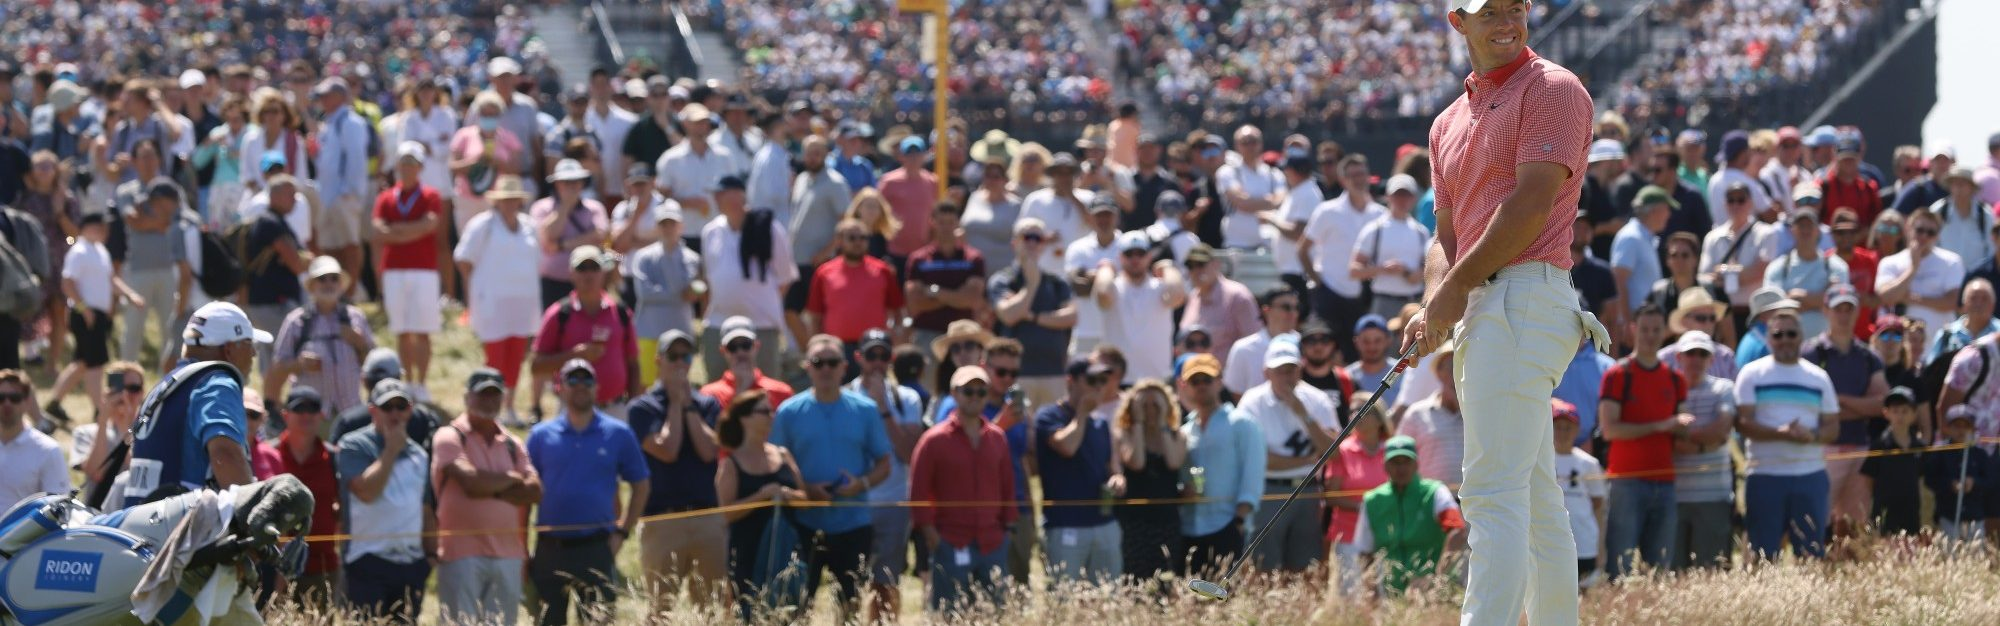 An Open in September? Four majors in four months isn't working, so let's shake it up a bit